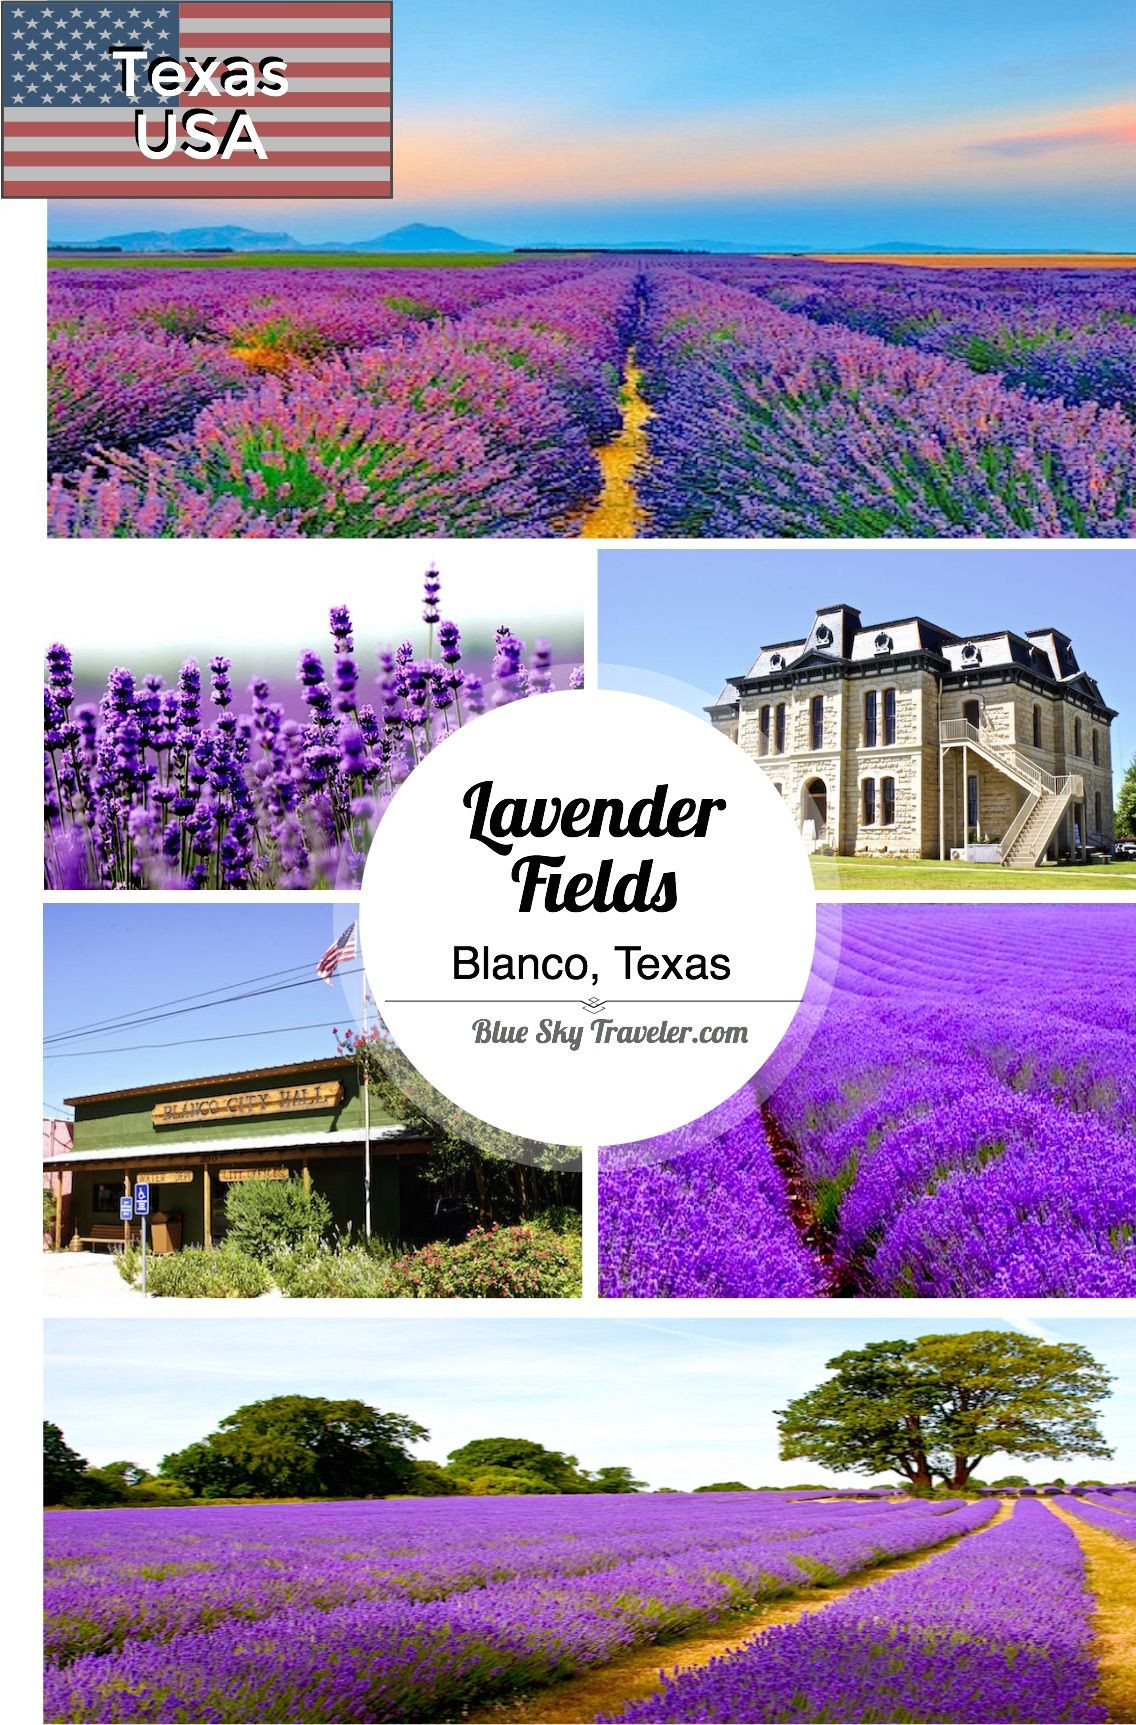 Best ideas about Landscape Supply Waco . Save or Pin 23 Excellent Landscape Supply Waco Texas Now.